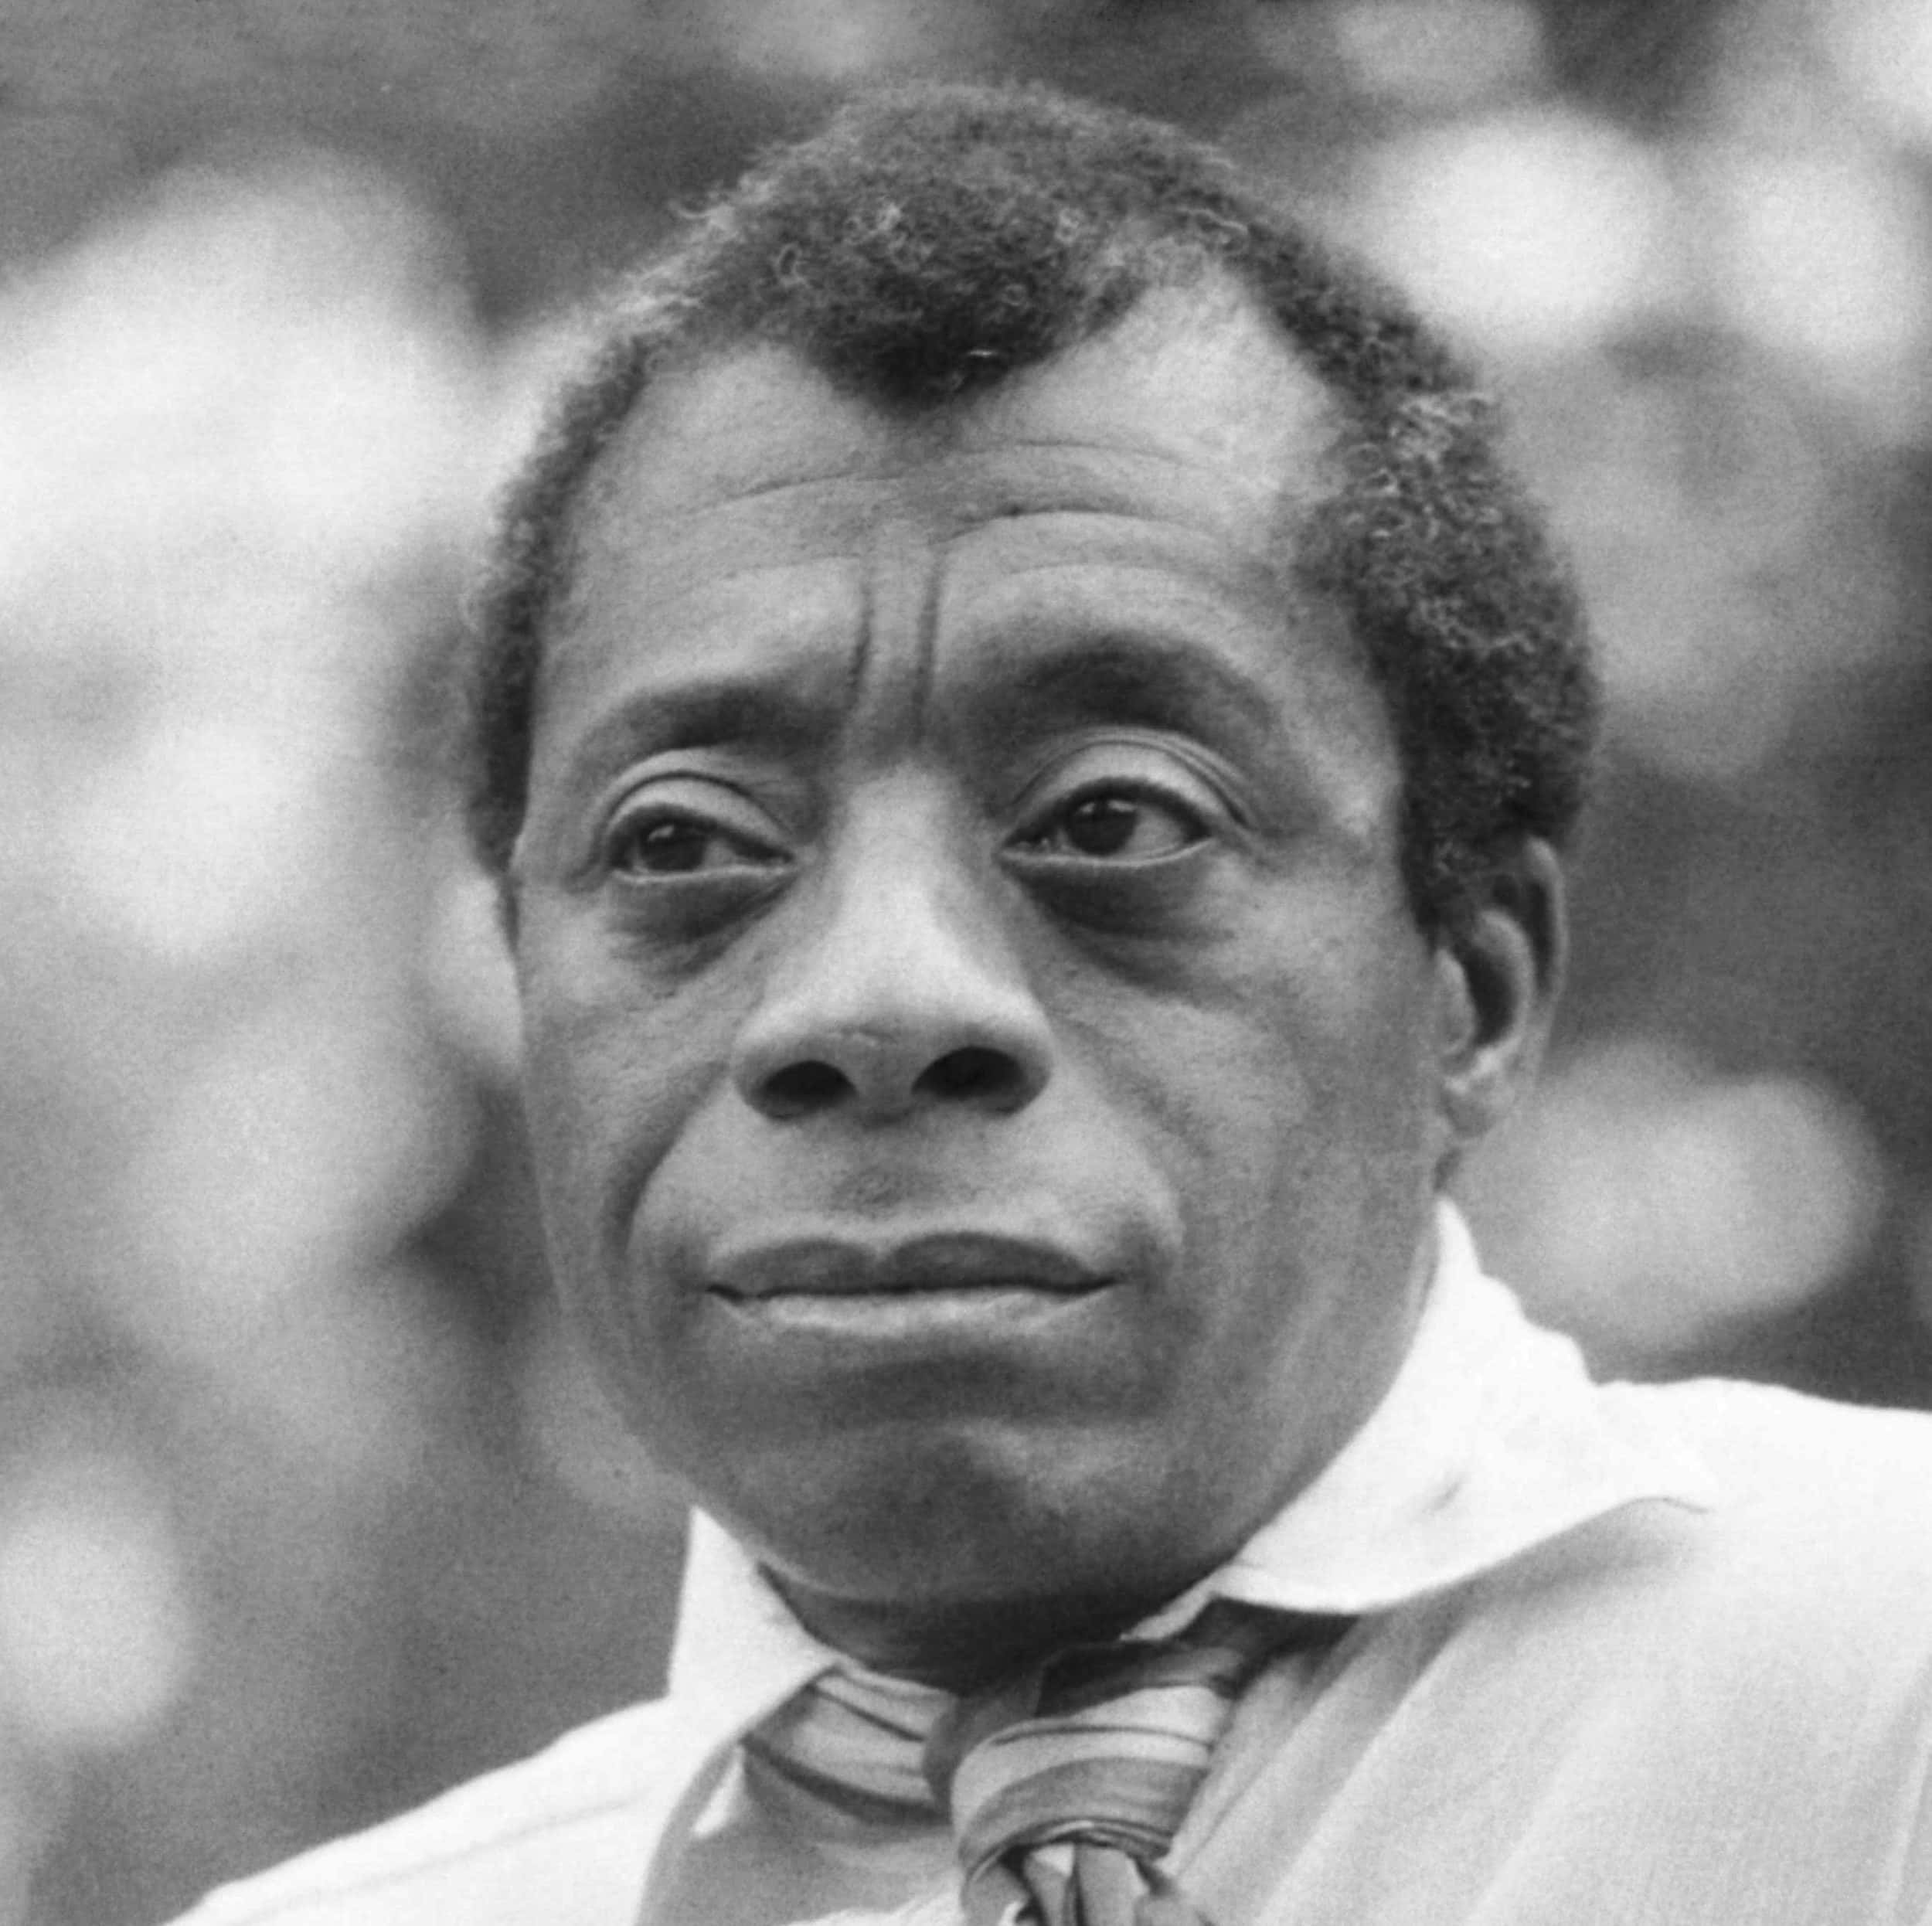 """Photo of James Baldwin for Baldin's """"Notes of a Native Son"""" in the Examined Life Library."""